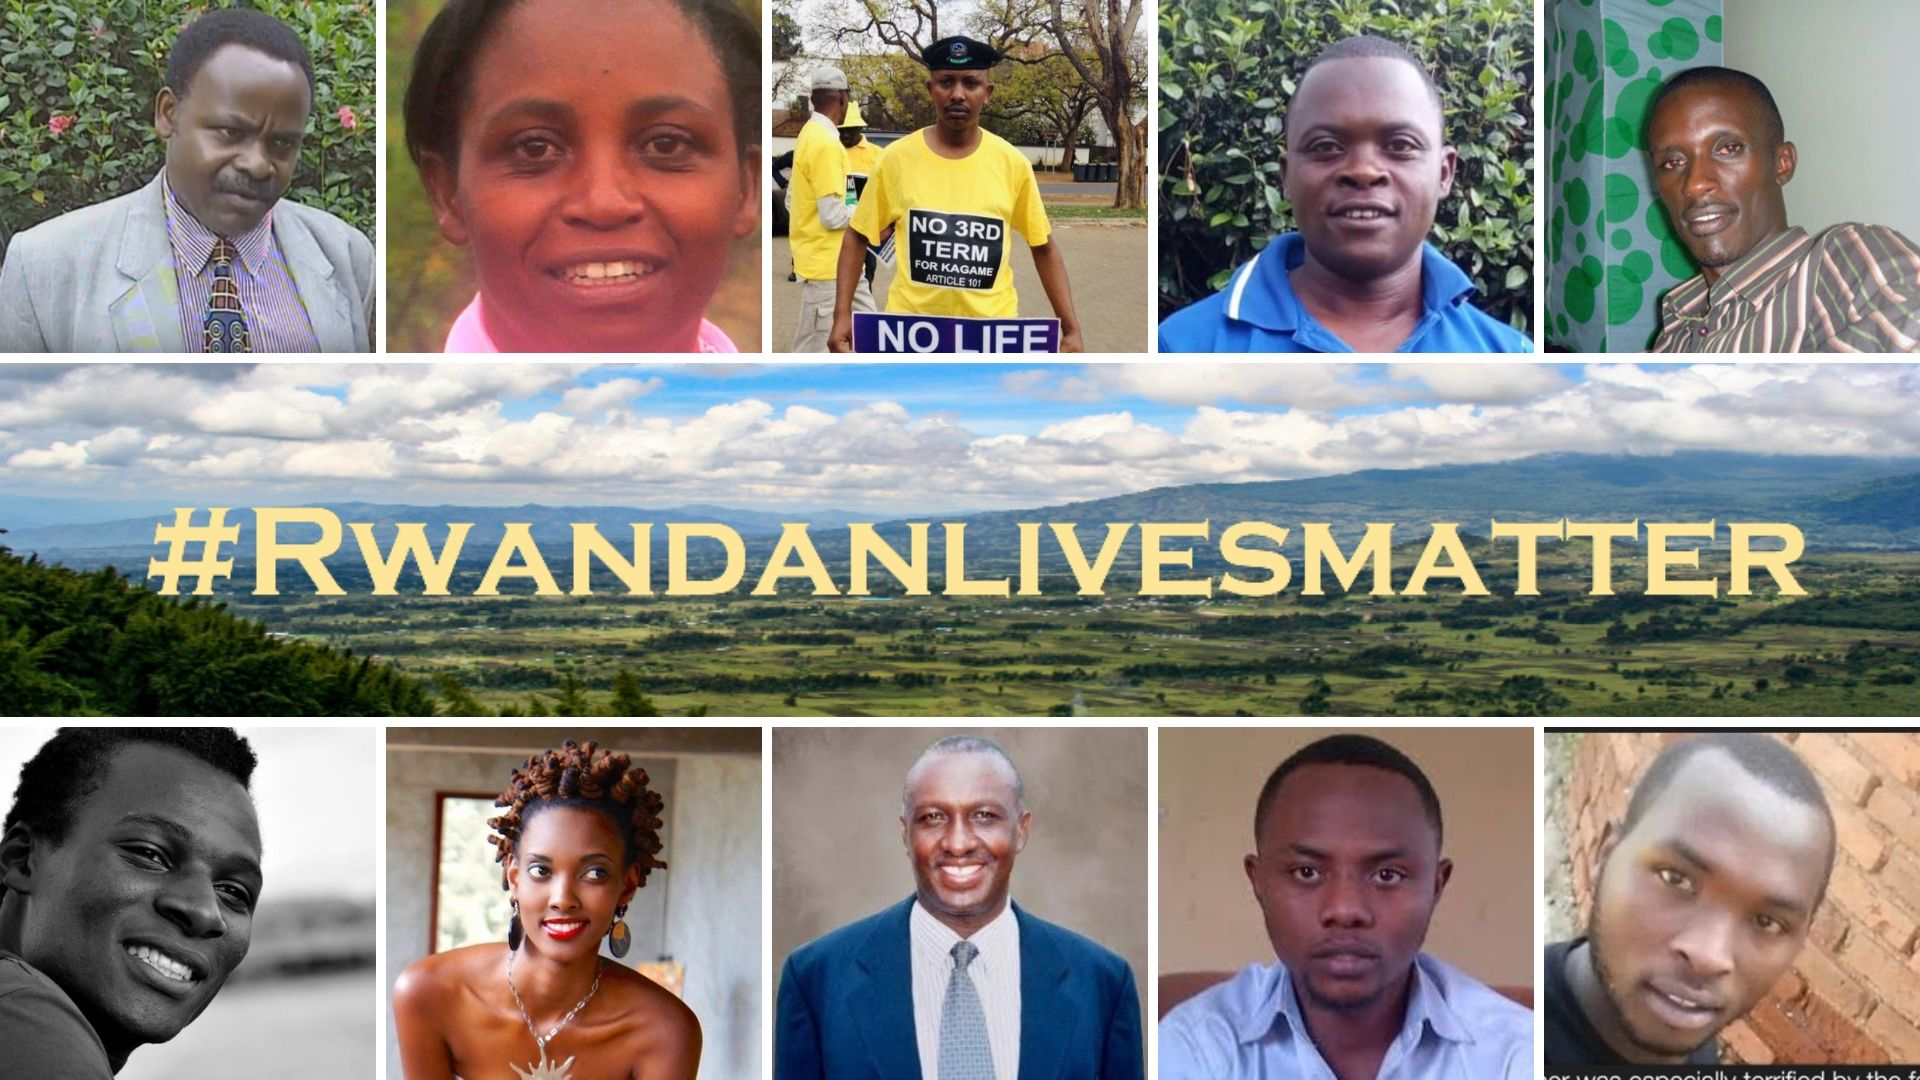 Rwandanlivesmatter.site: Cry for justice